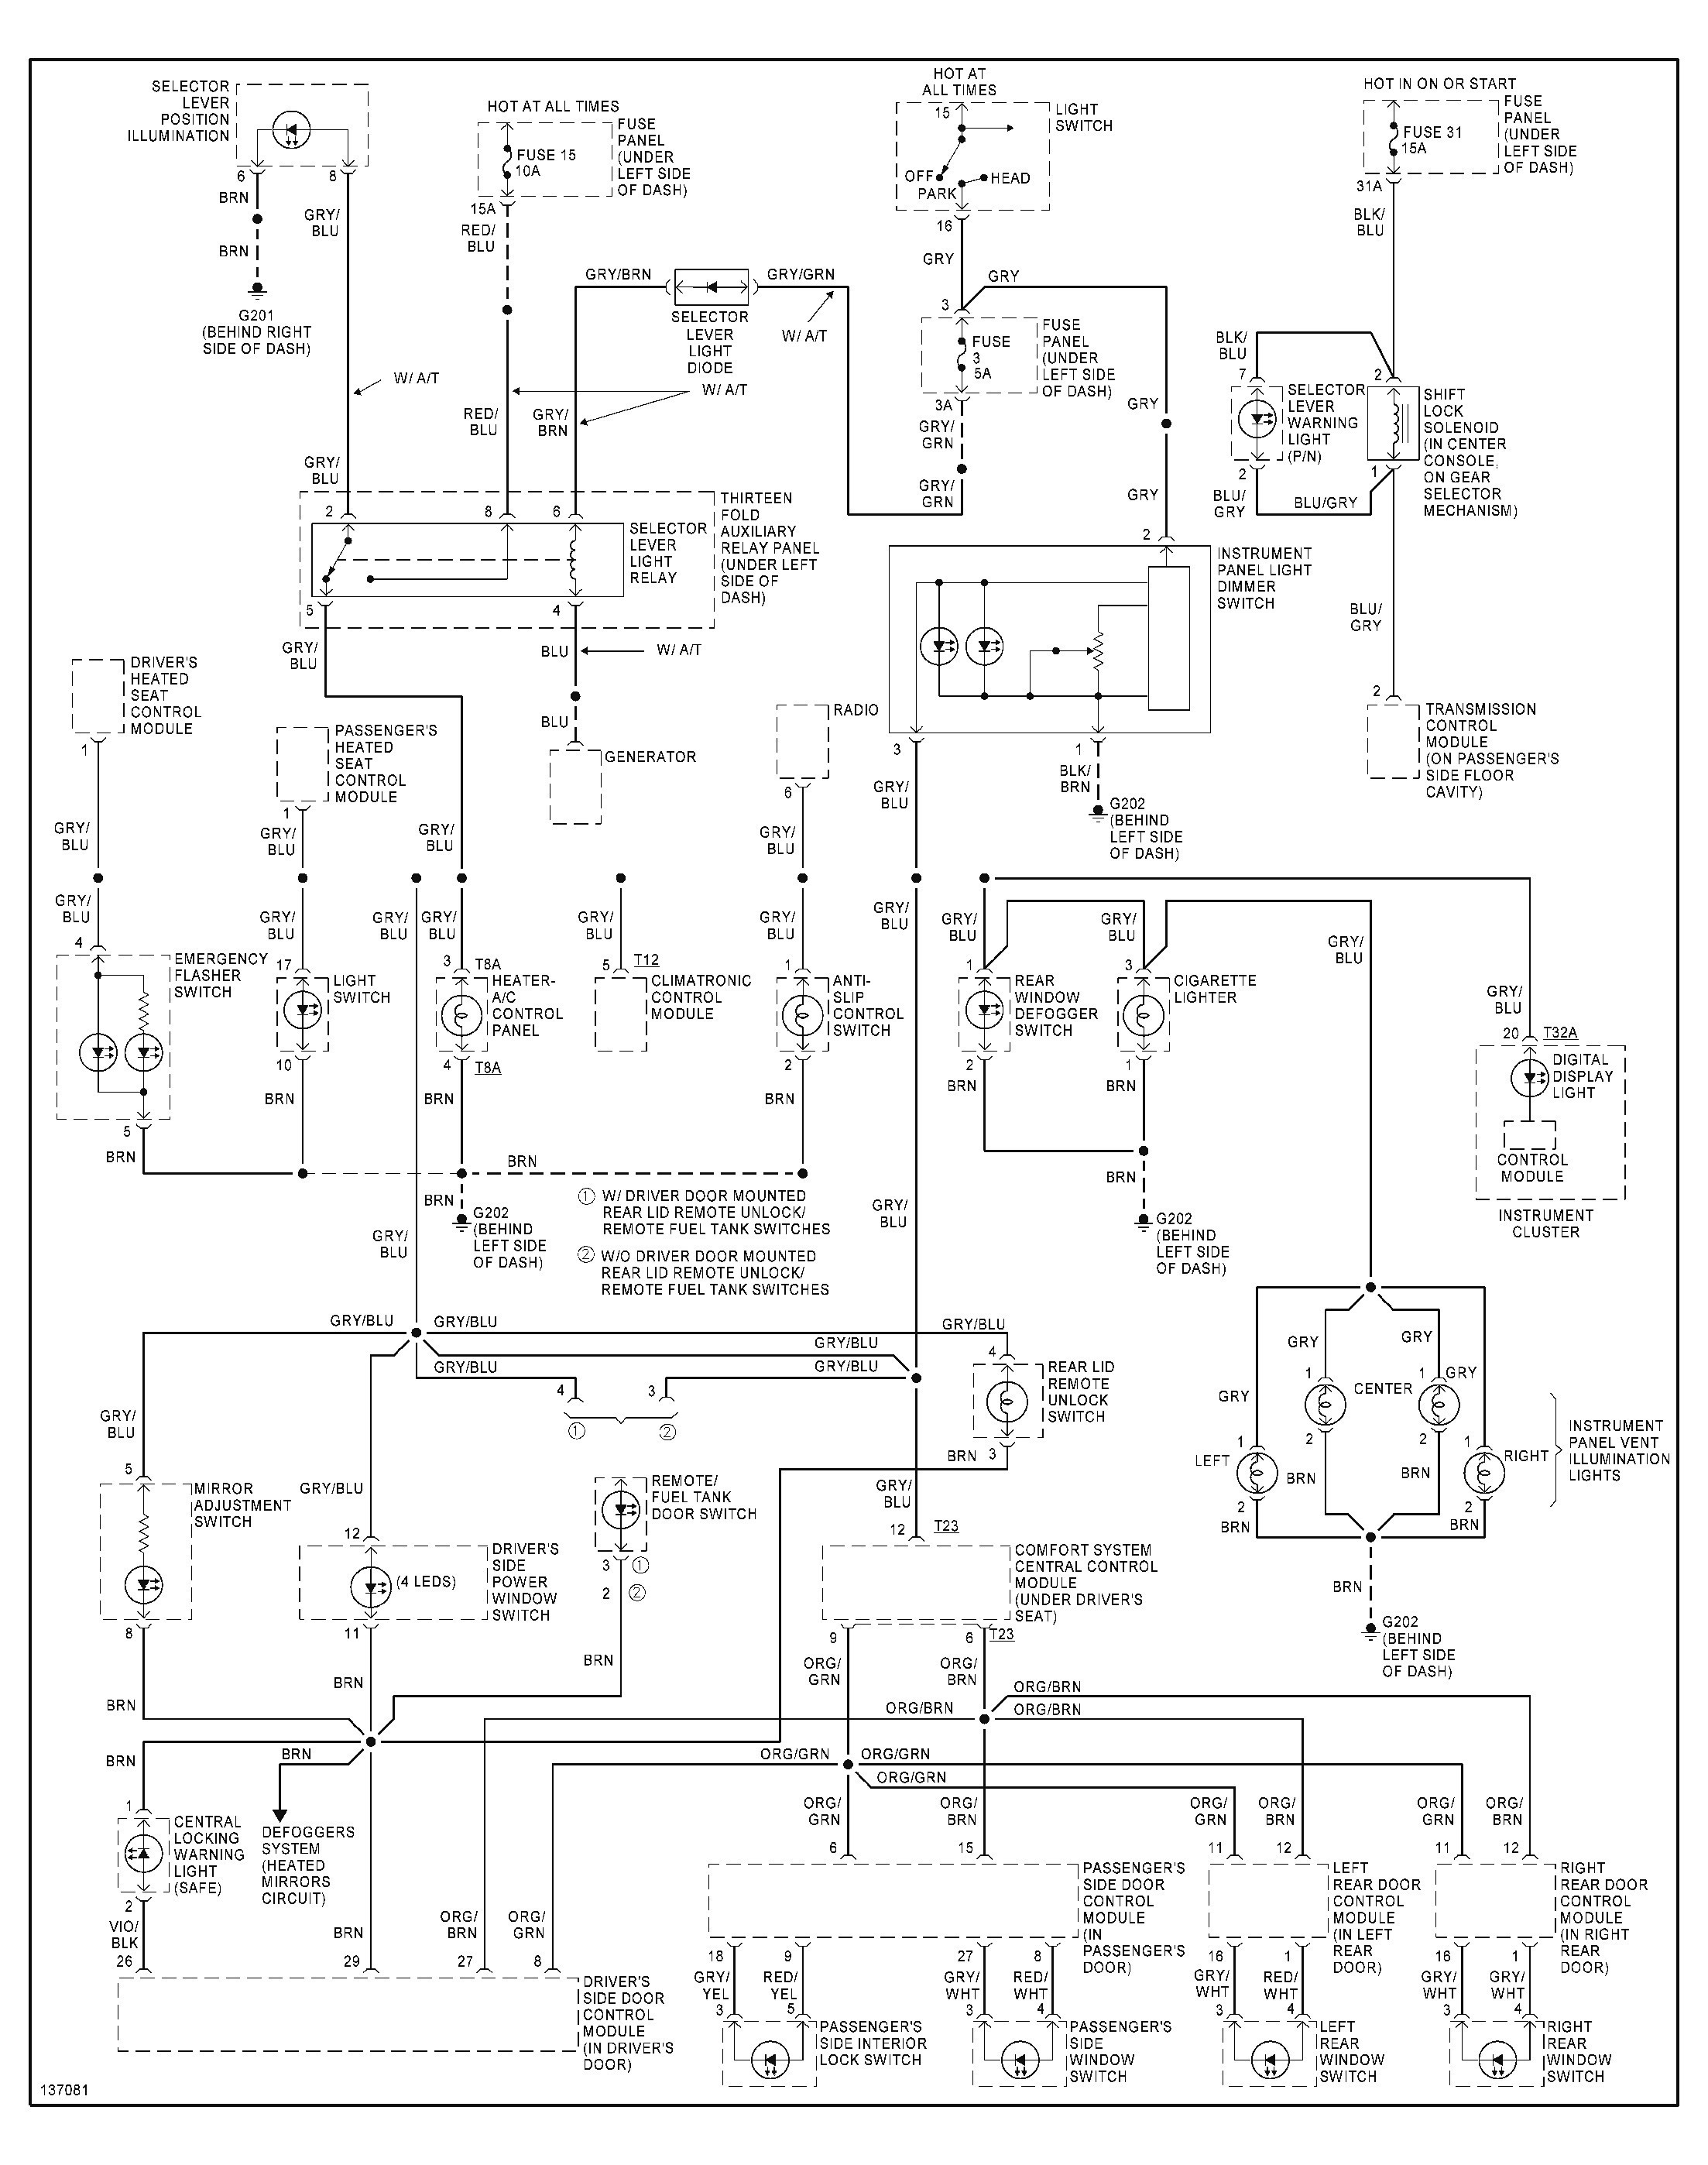 2003 Lincoln Ls V8 Engine Diagram Wiring Diagram for 2003 Lincoln Ls V8 Free Download Wiring Diagram Of 2003 Lincoln Ls V8 Engine Diagram Fan Clutch 2002 Lincoln Ls Parts Diagram Wiring Diagram Services •